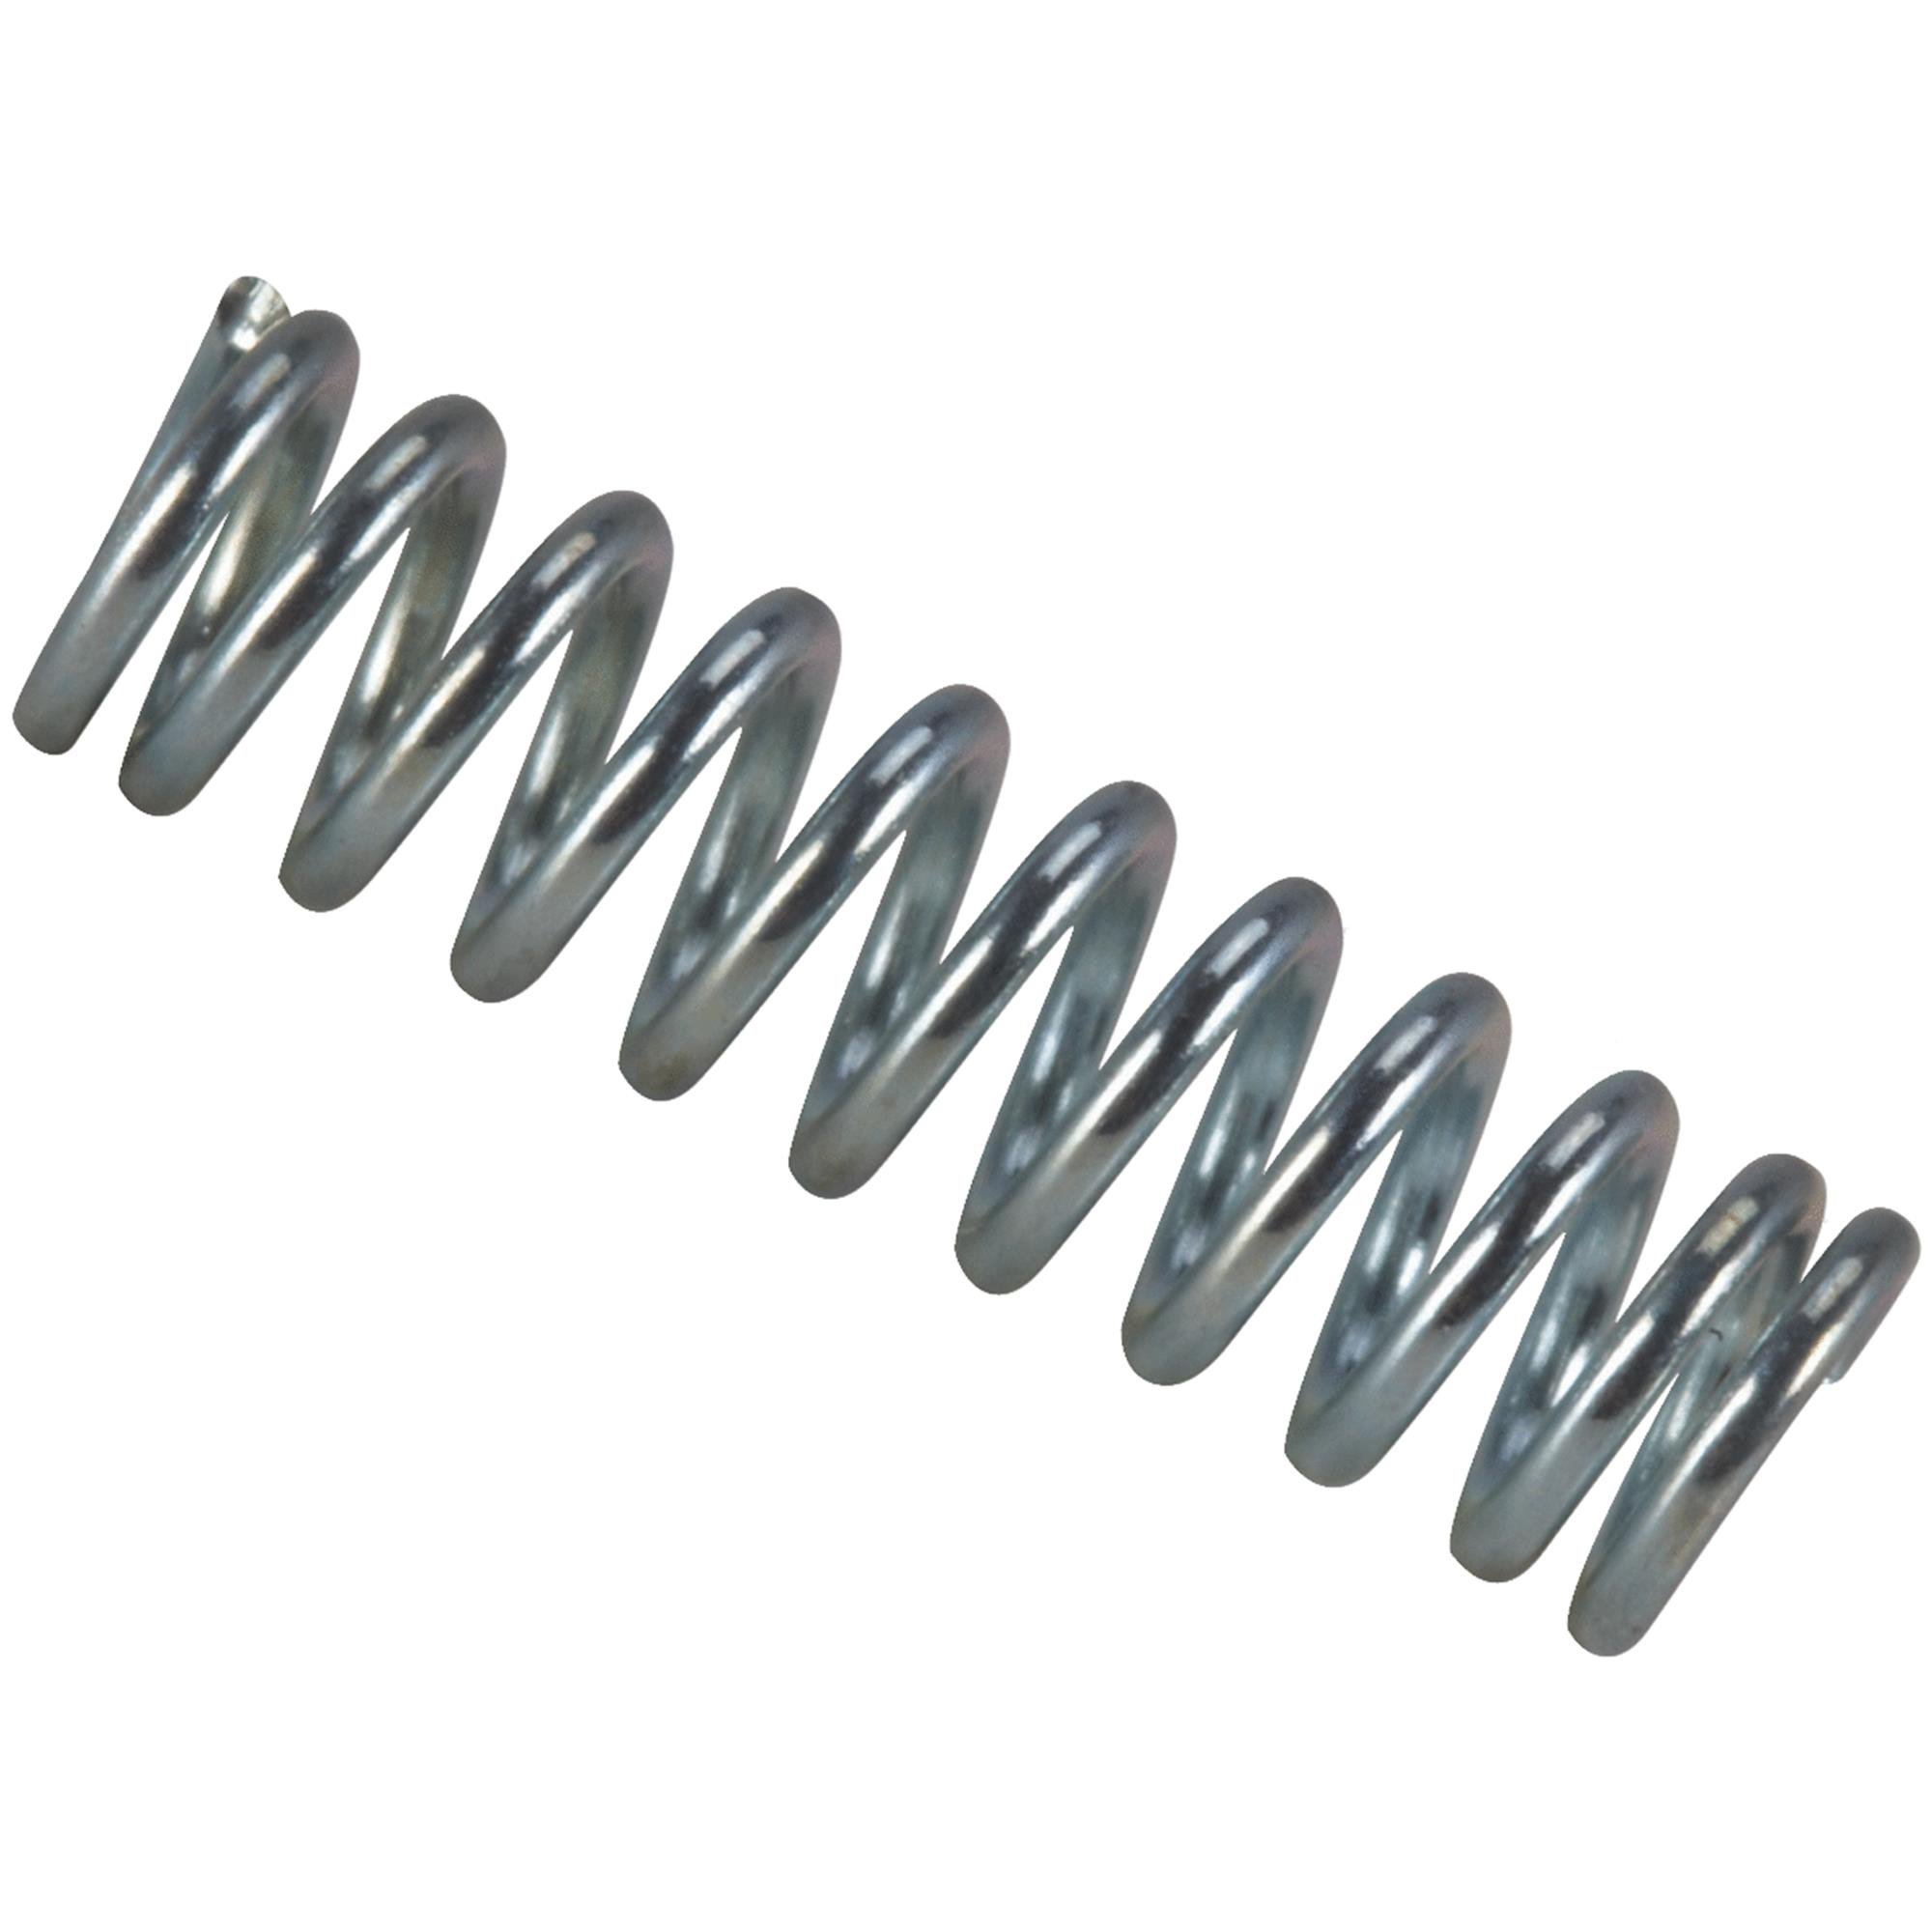 "Century Spring C-826 3-1/2"" Compression Springs 2 Count"